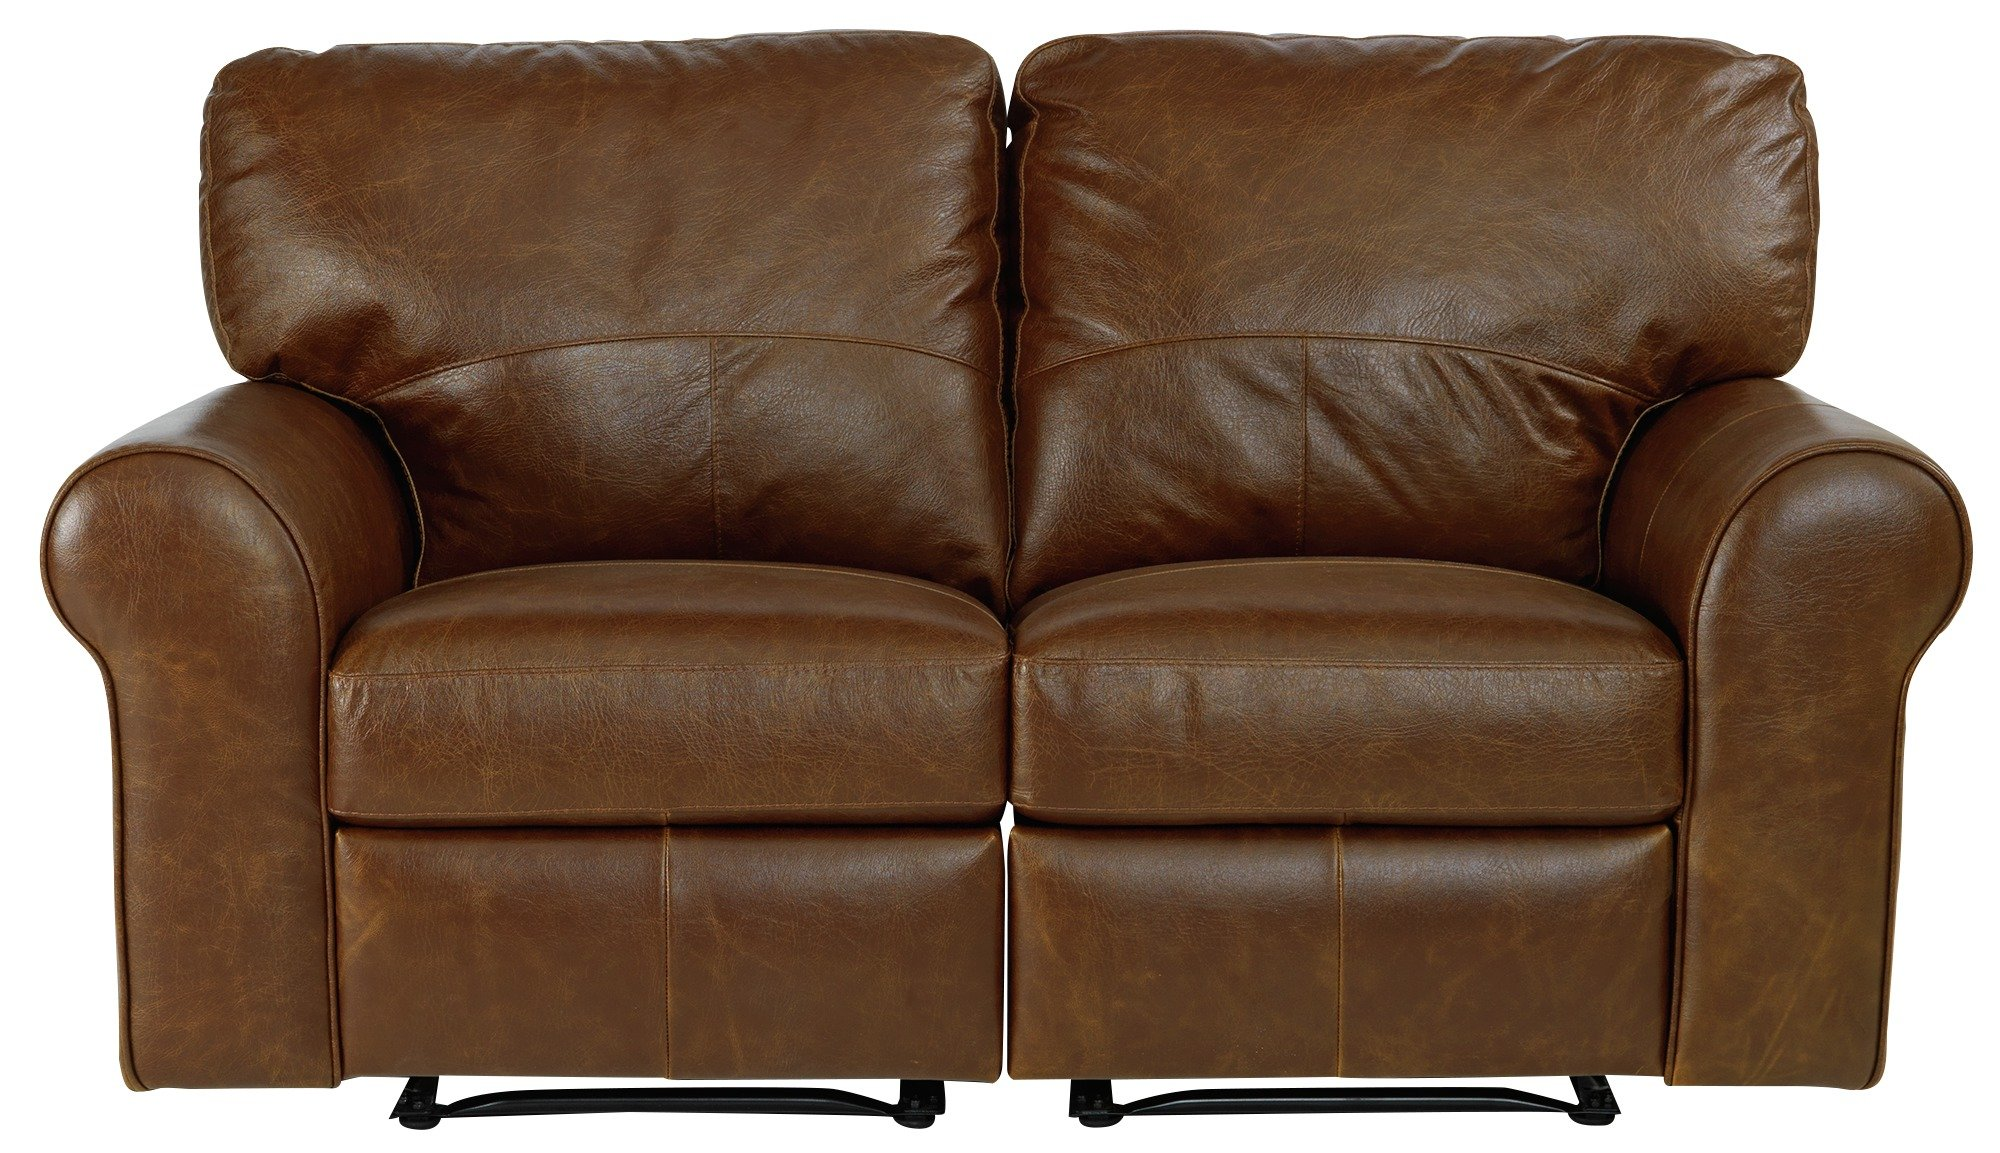 Buy Argos Home Salisbury 2 Seater Leather Recliner Sofa Tan